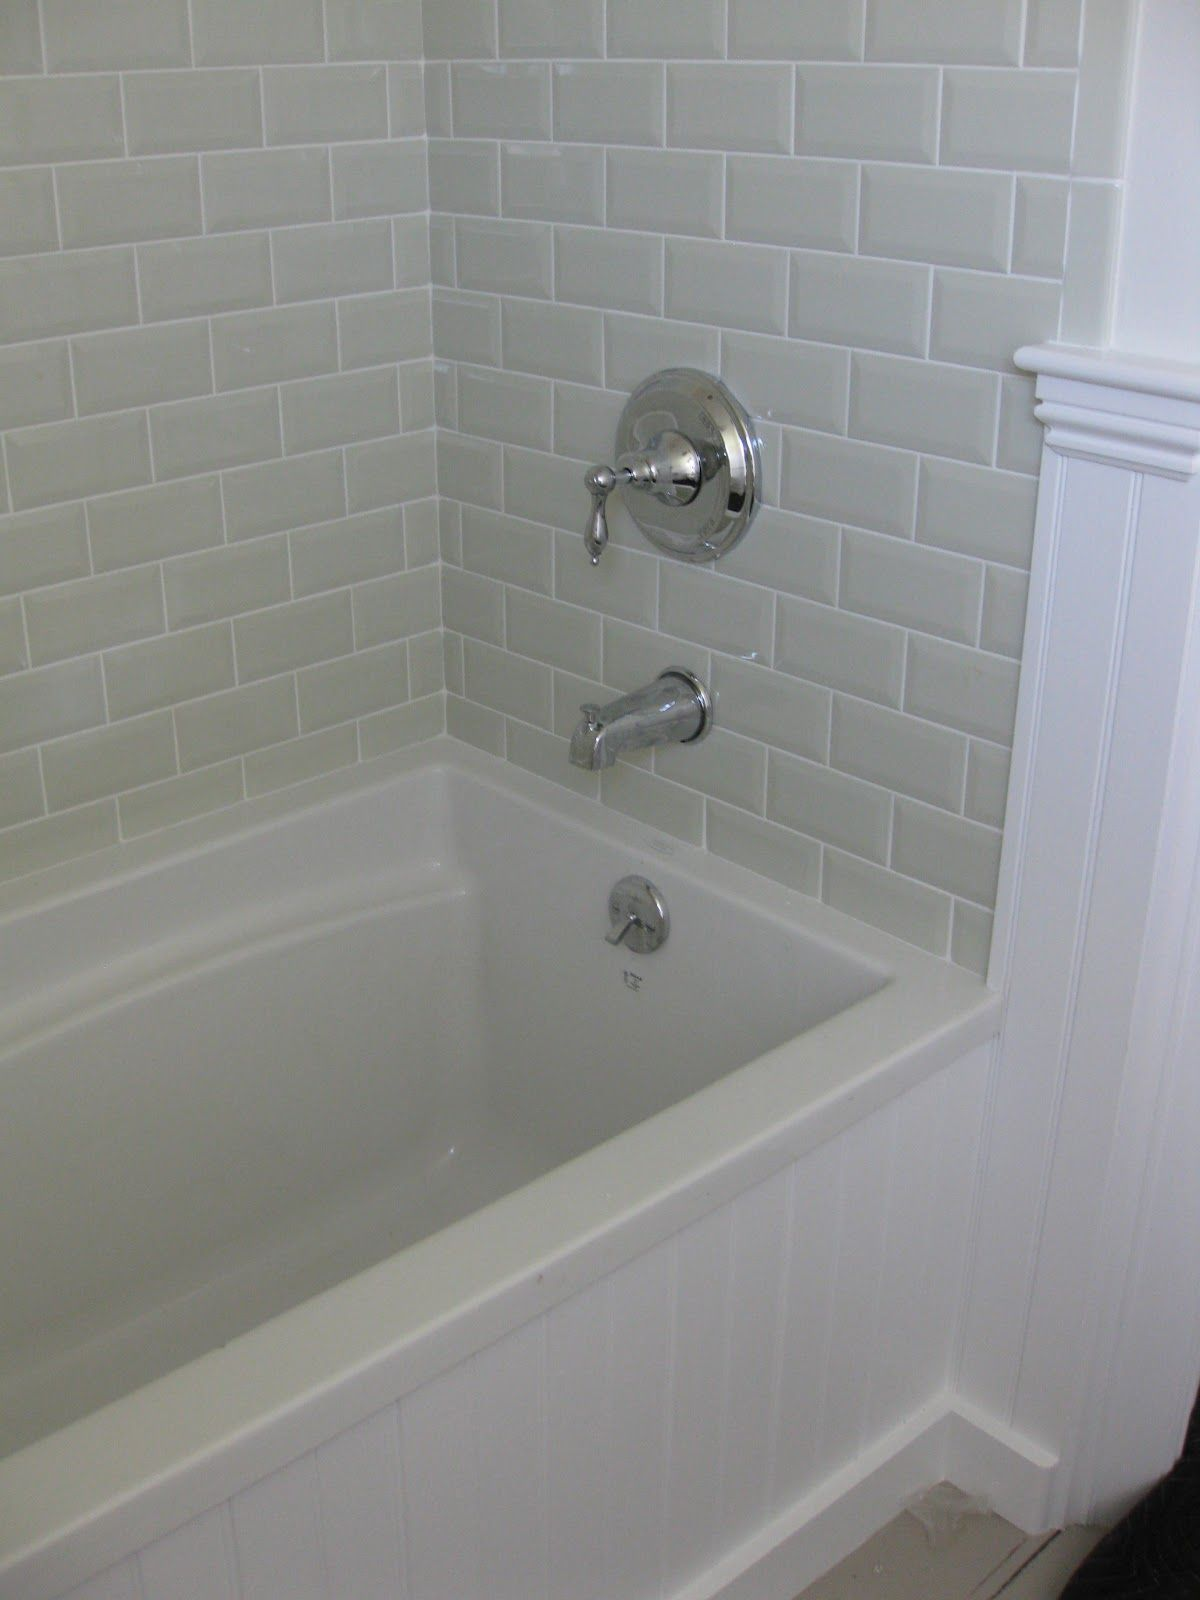 Attirant Love The Beveled Subway Tile Master Bathroom!!